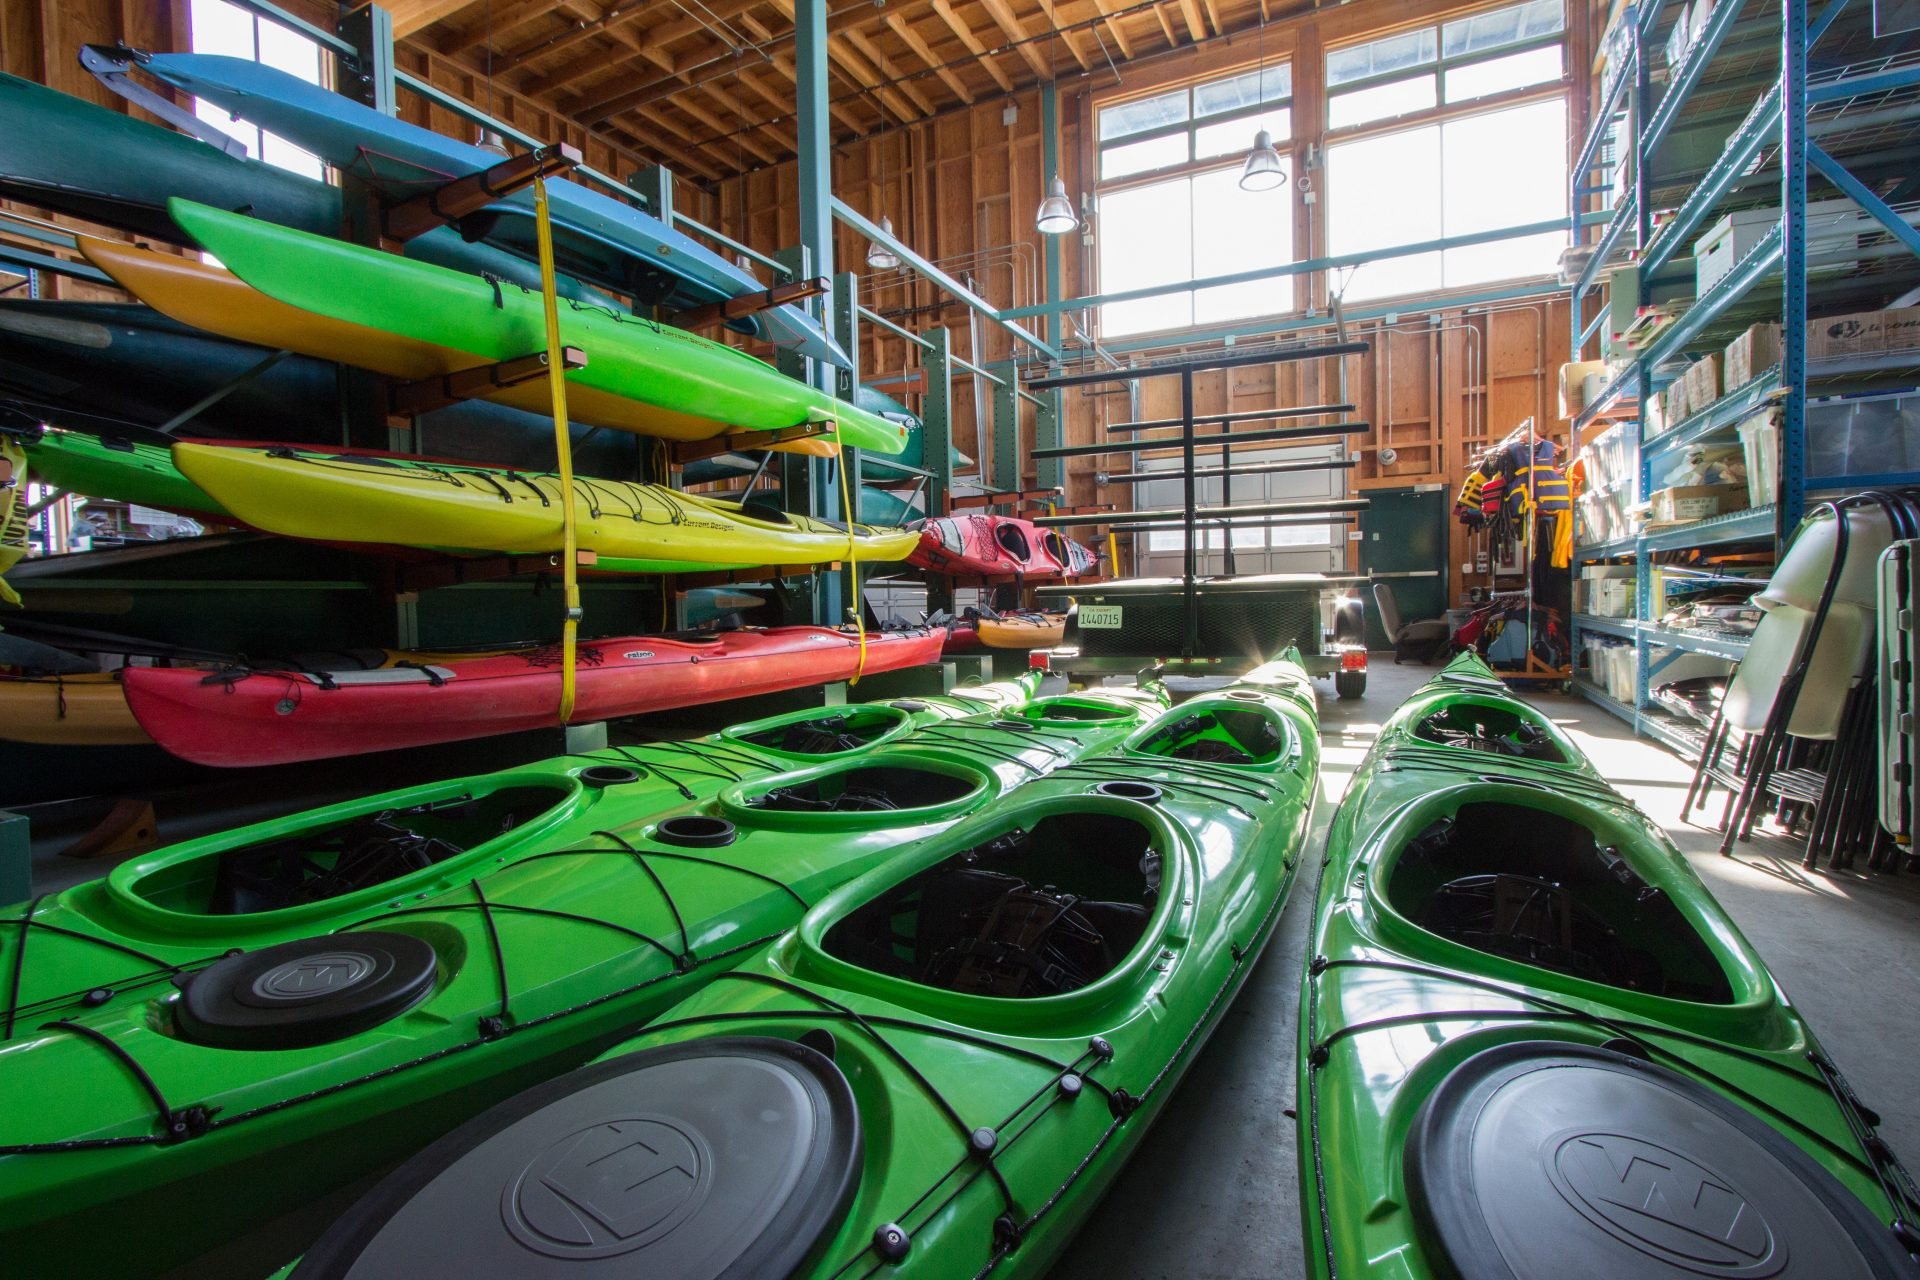 Shed full of double kayaks, on floor and in racks